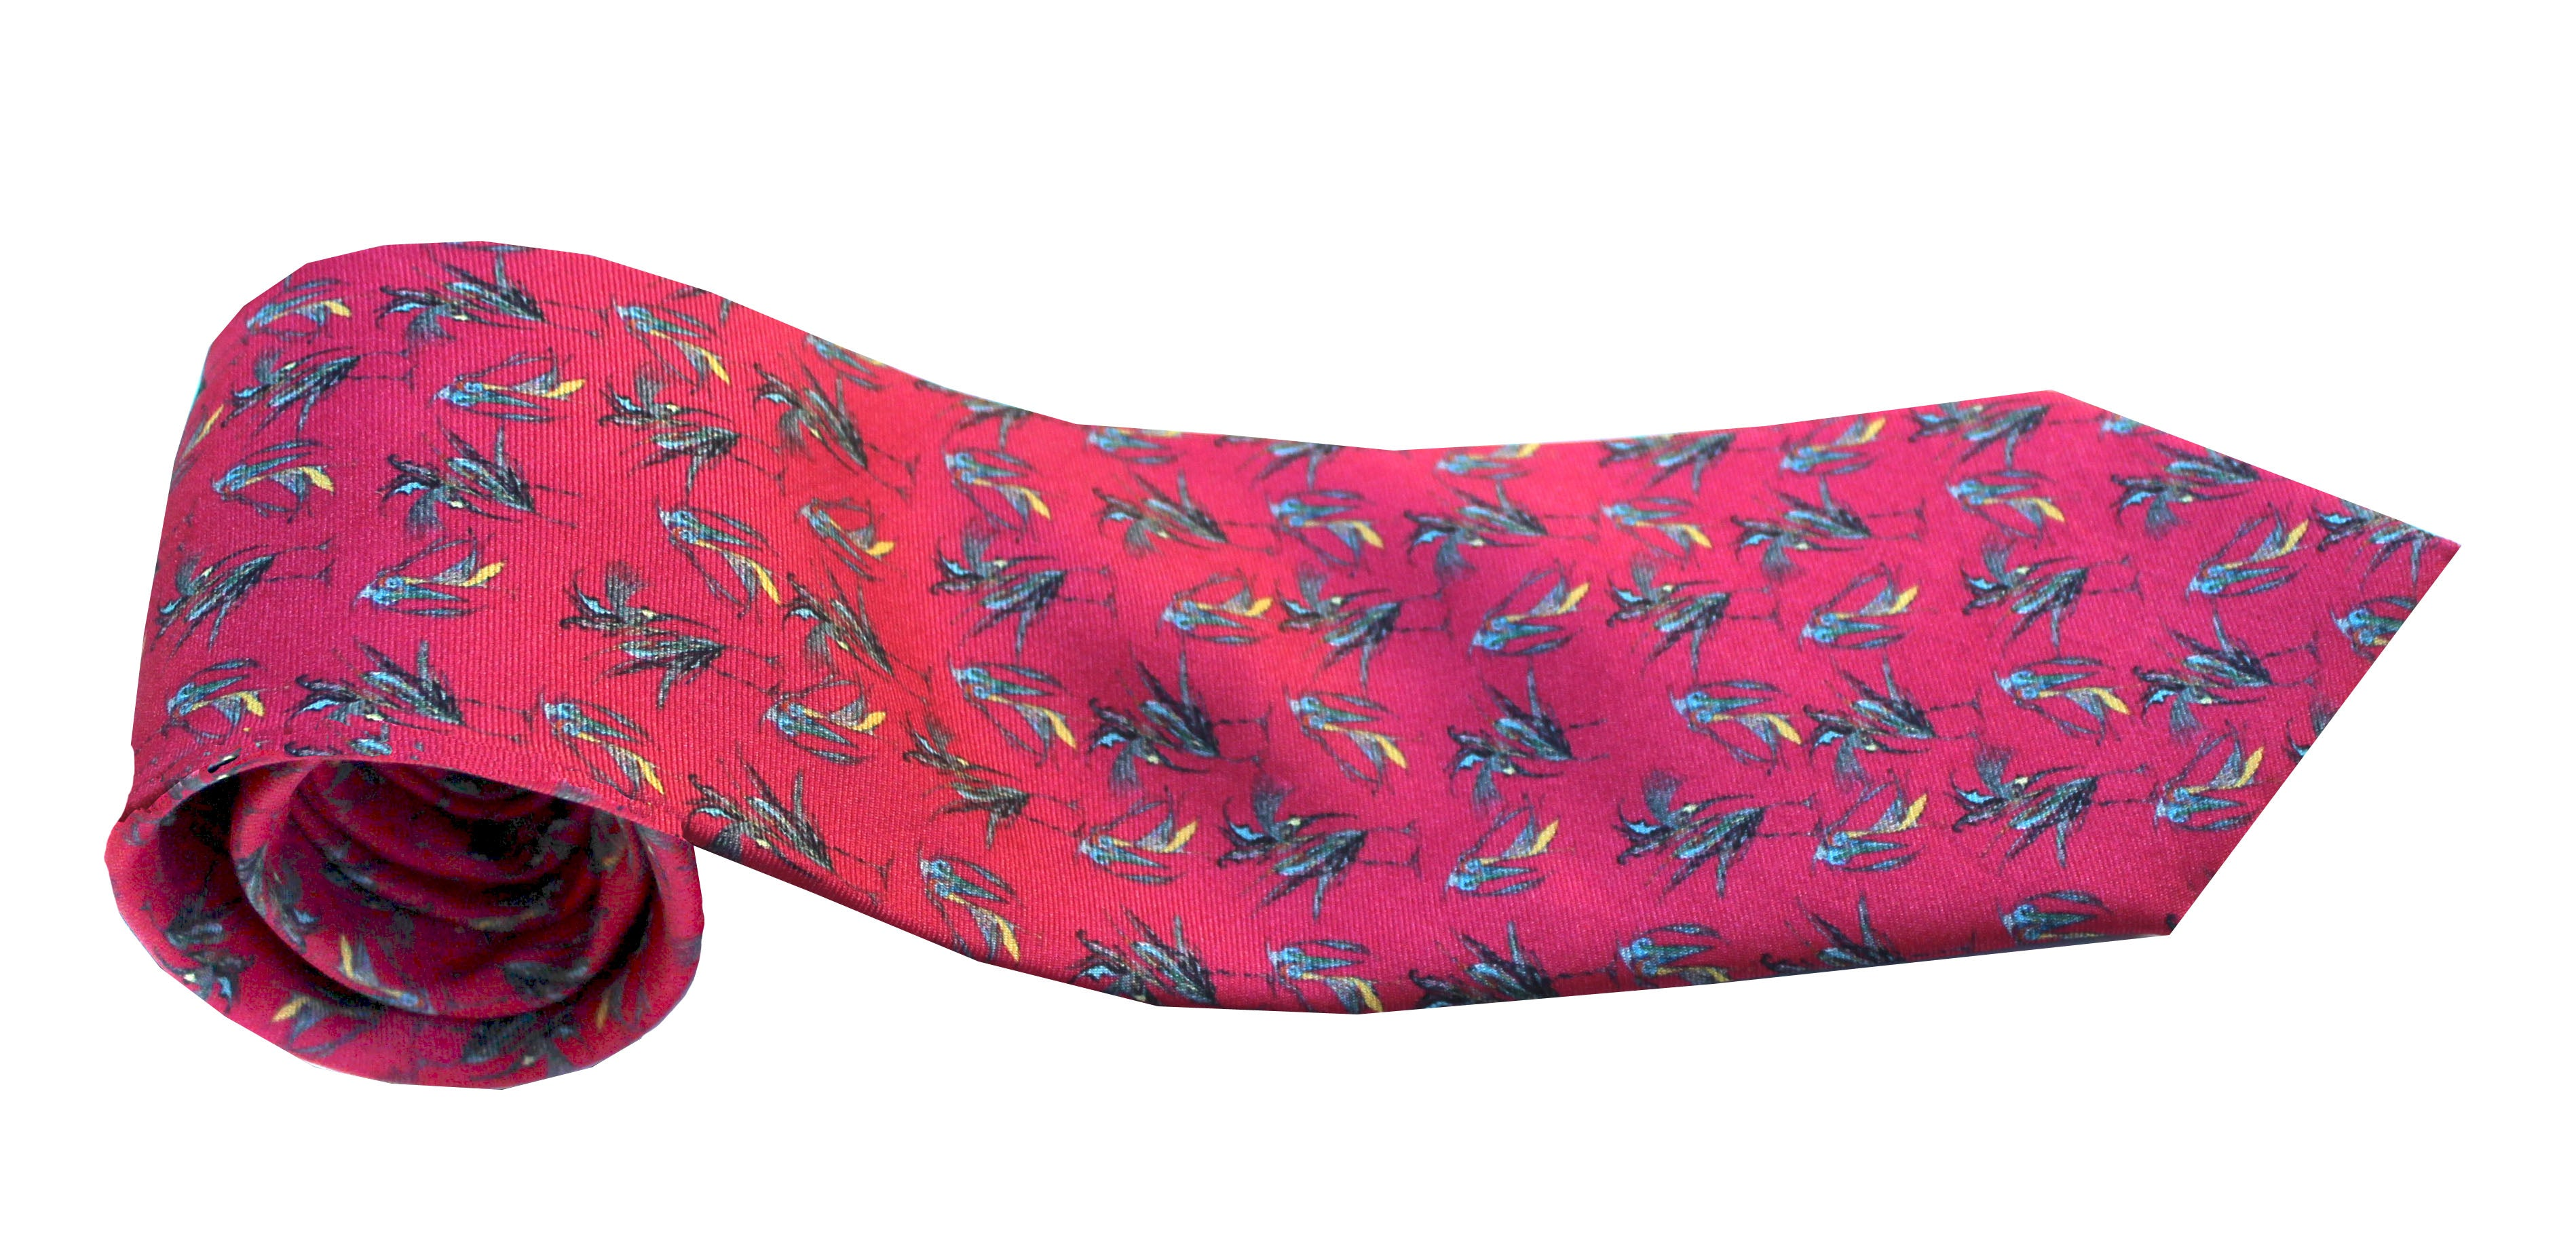 100% Silk Twill Tie in a Red Bird Pattern